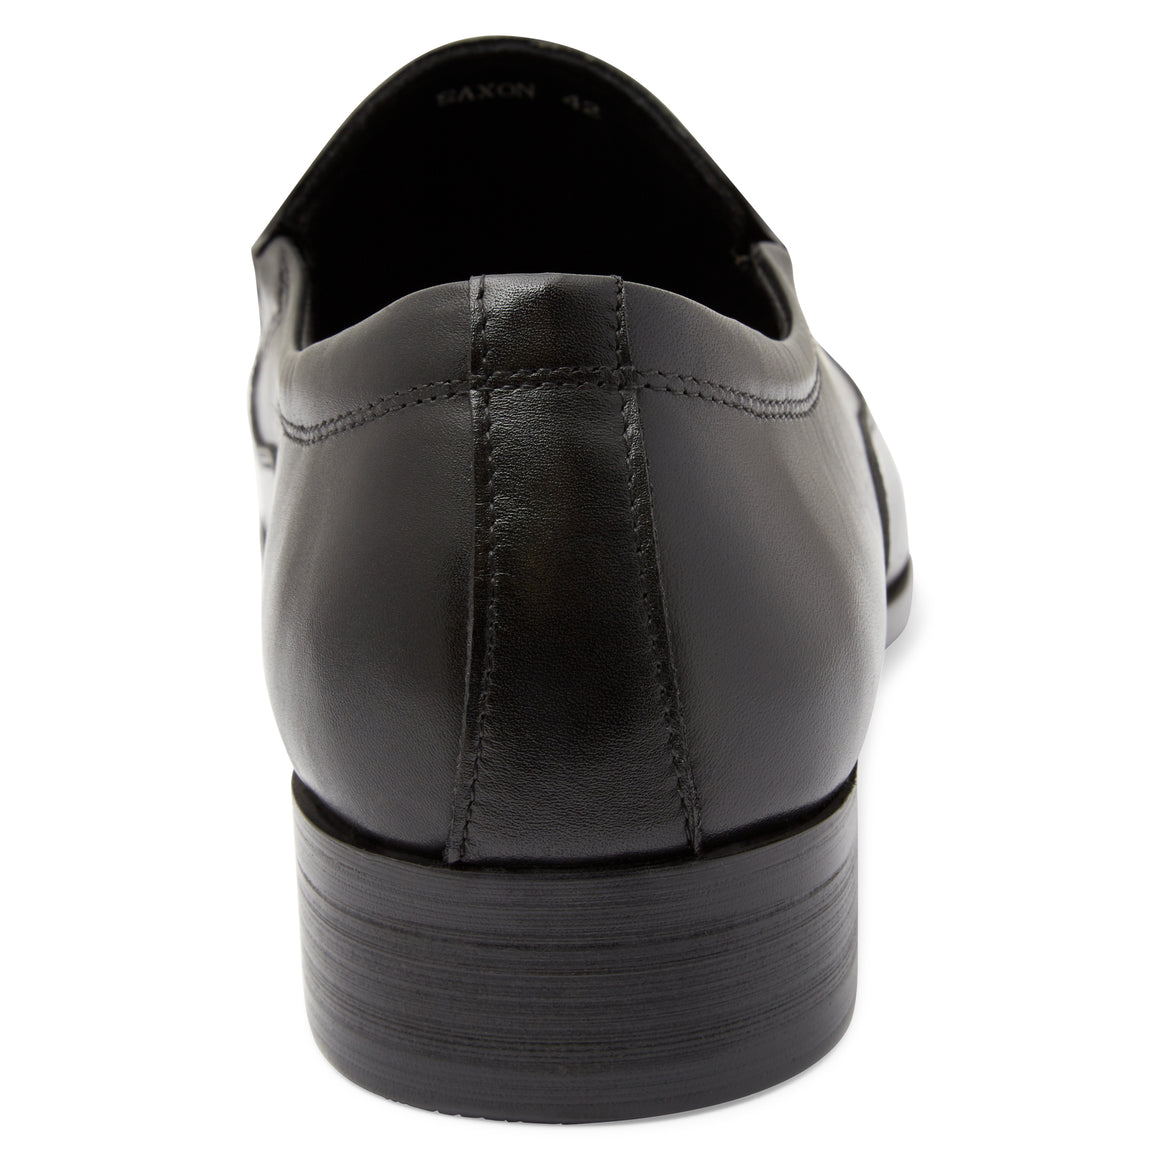 Saxon Black Slip On Shoes